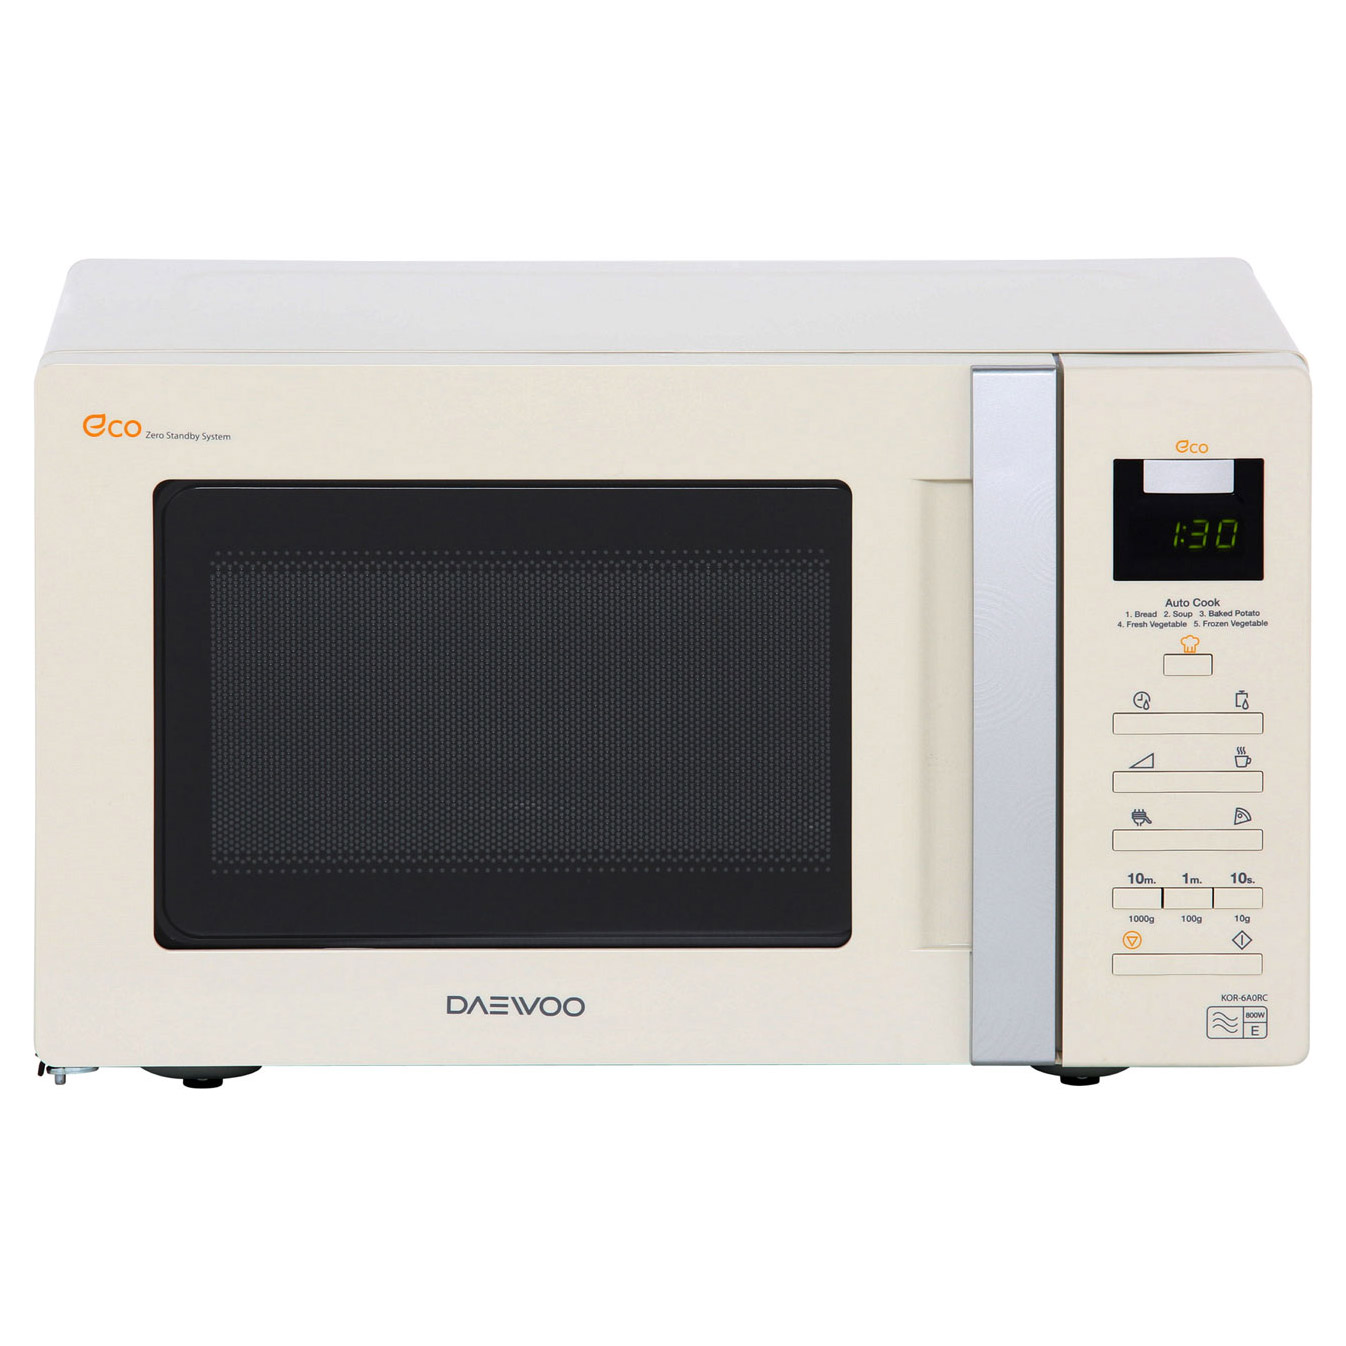 Daewoo KOR6A0RC Microwave Oven in Cream, 20L 800W Touch Controls